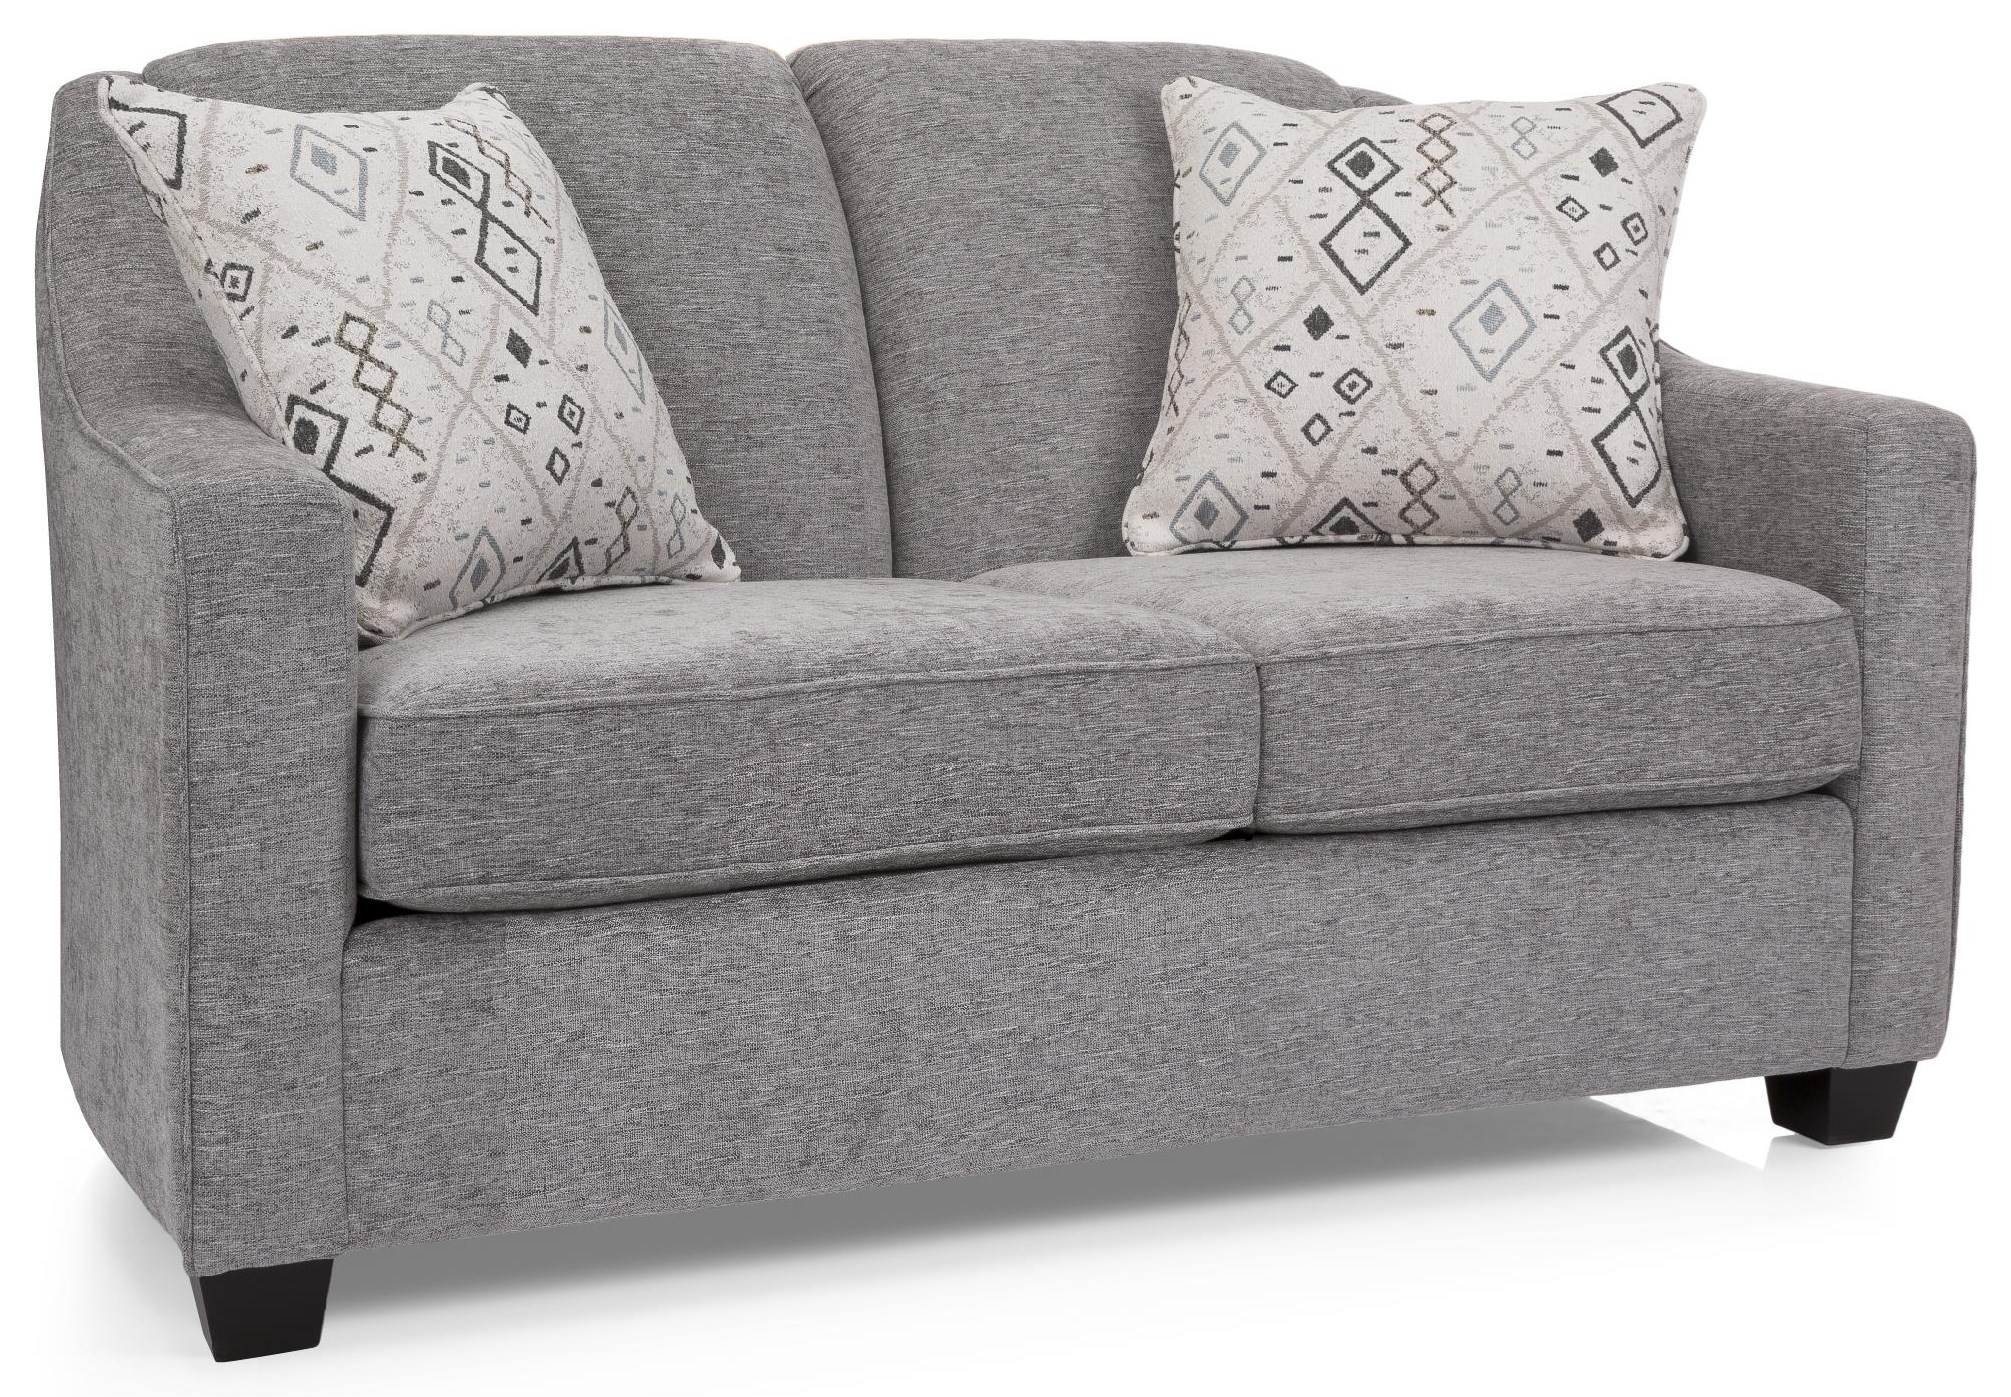 Rico Loveseat by Taelor Designs at Bennett's Furniture and Mattresses